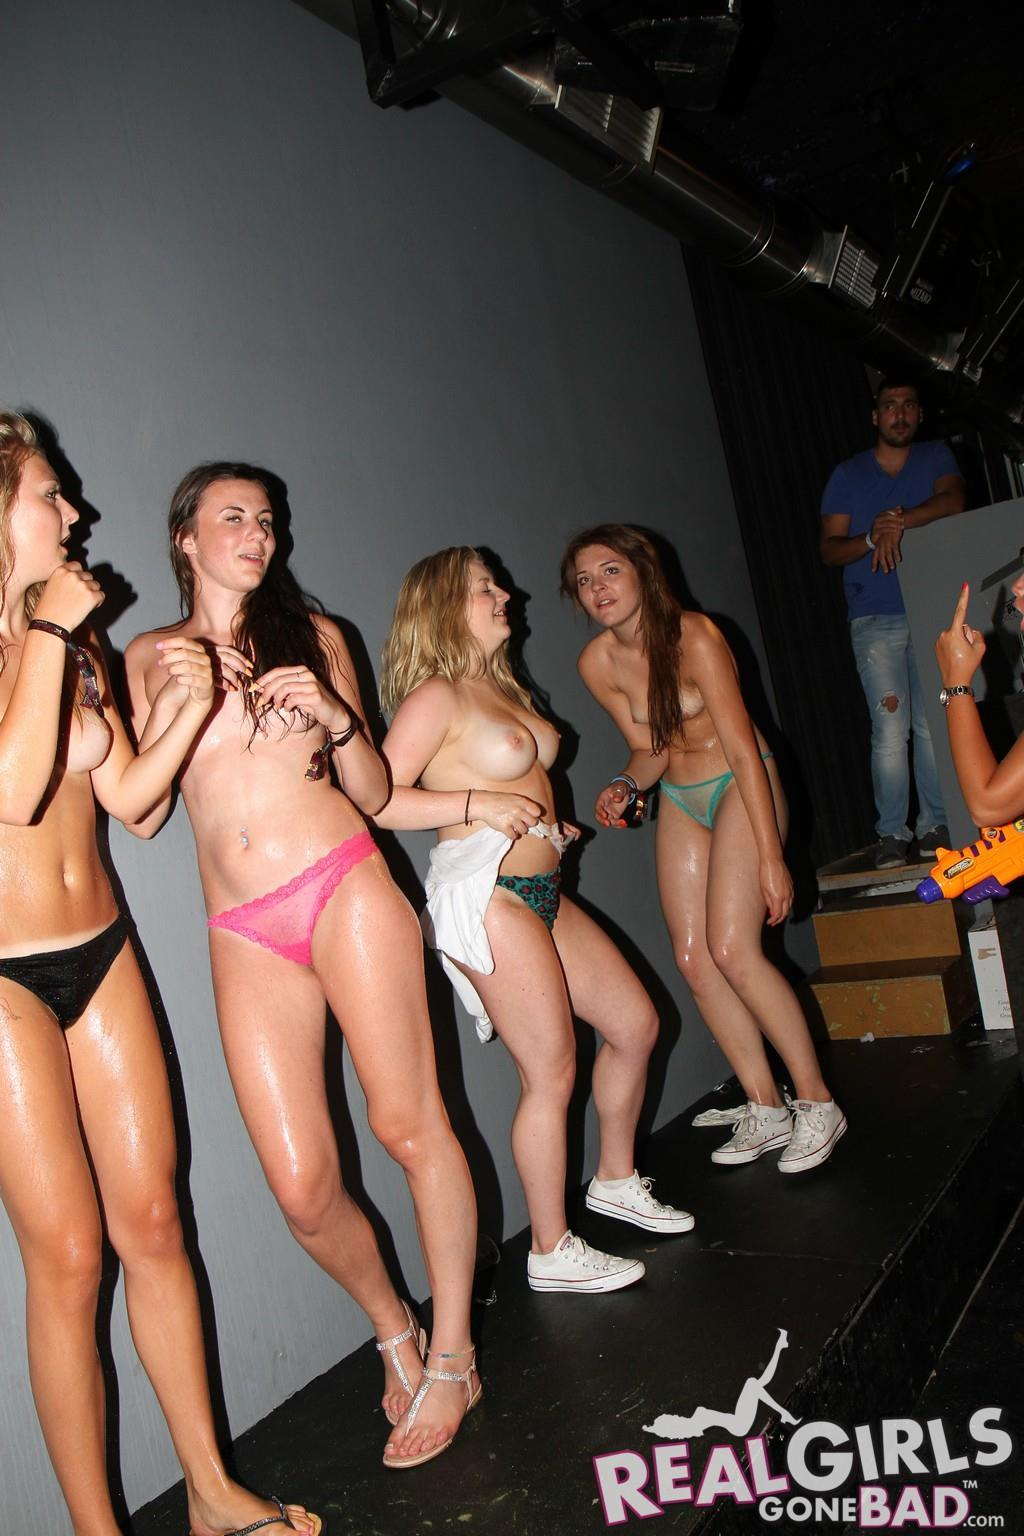 Teens strippers